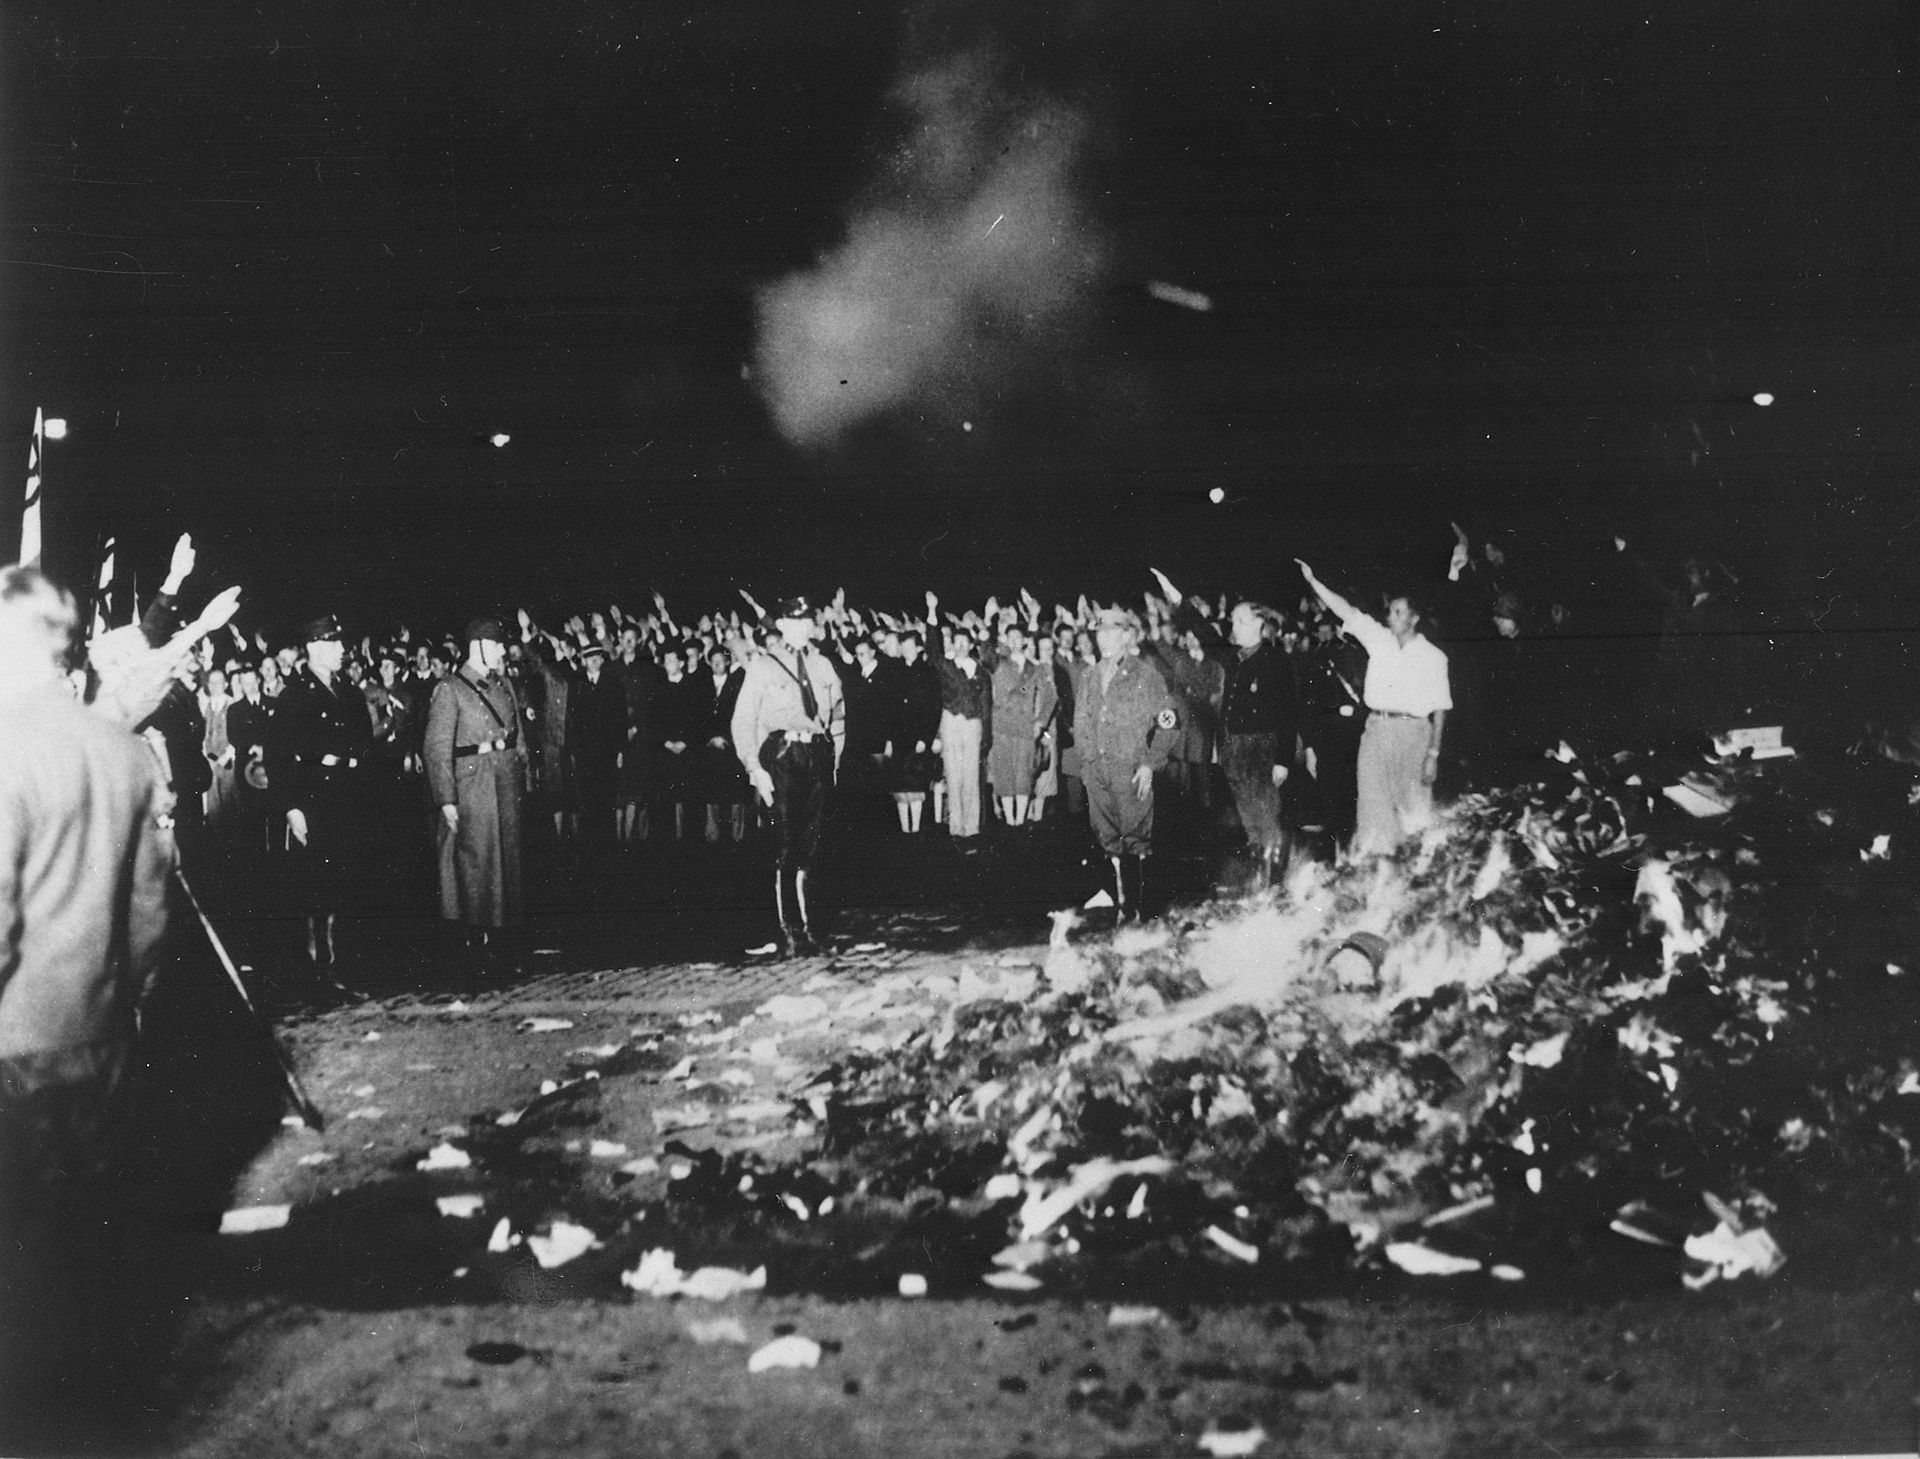 Thousands of books smoulder in a huge bonfire as Germans give the Nazi salute during the wave of book-burnings that spread throughout Germany